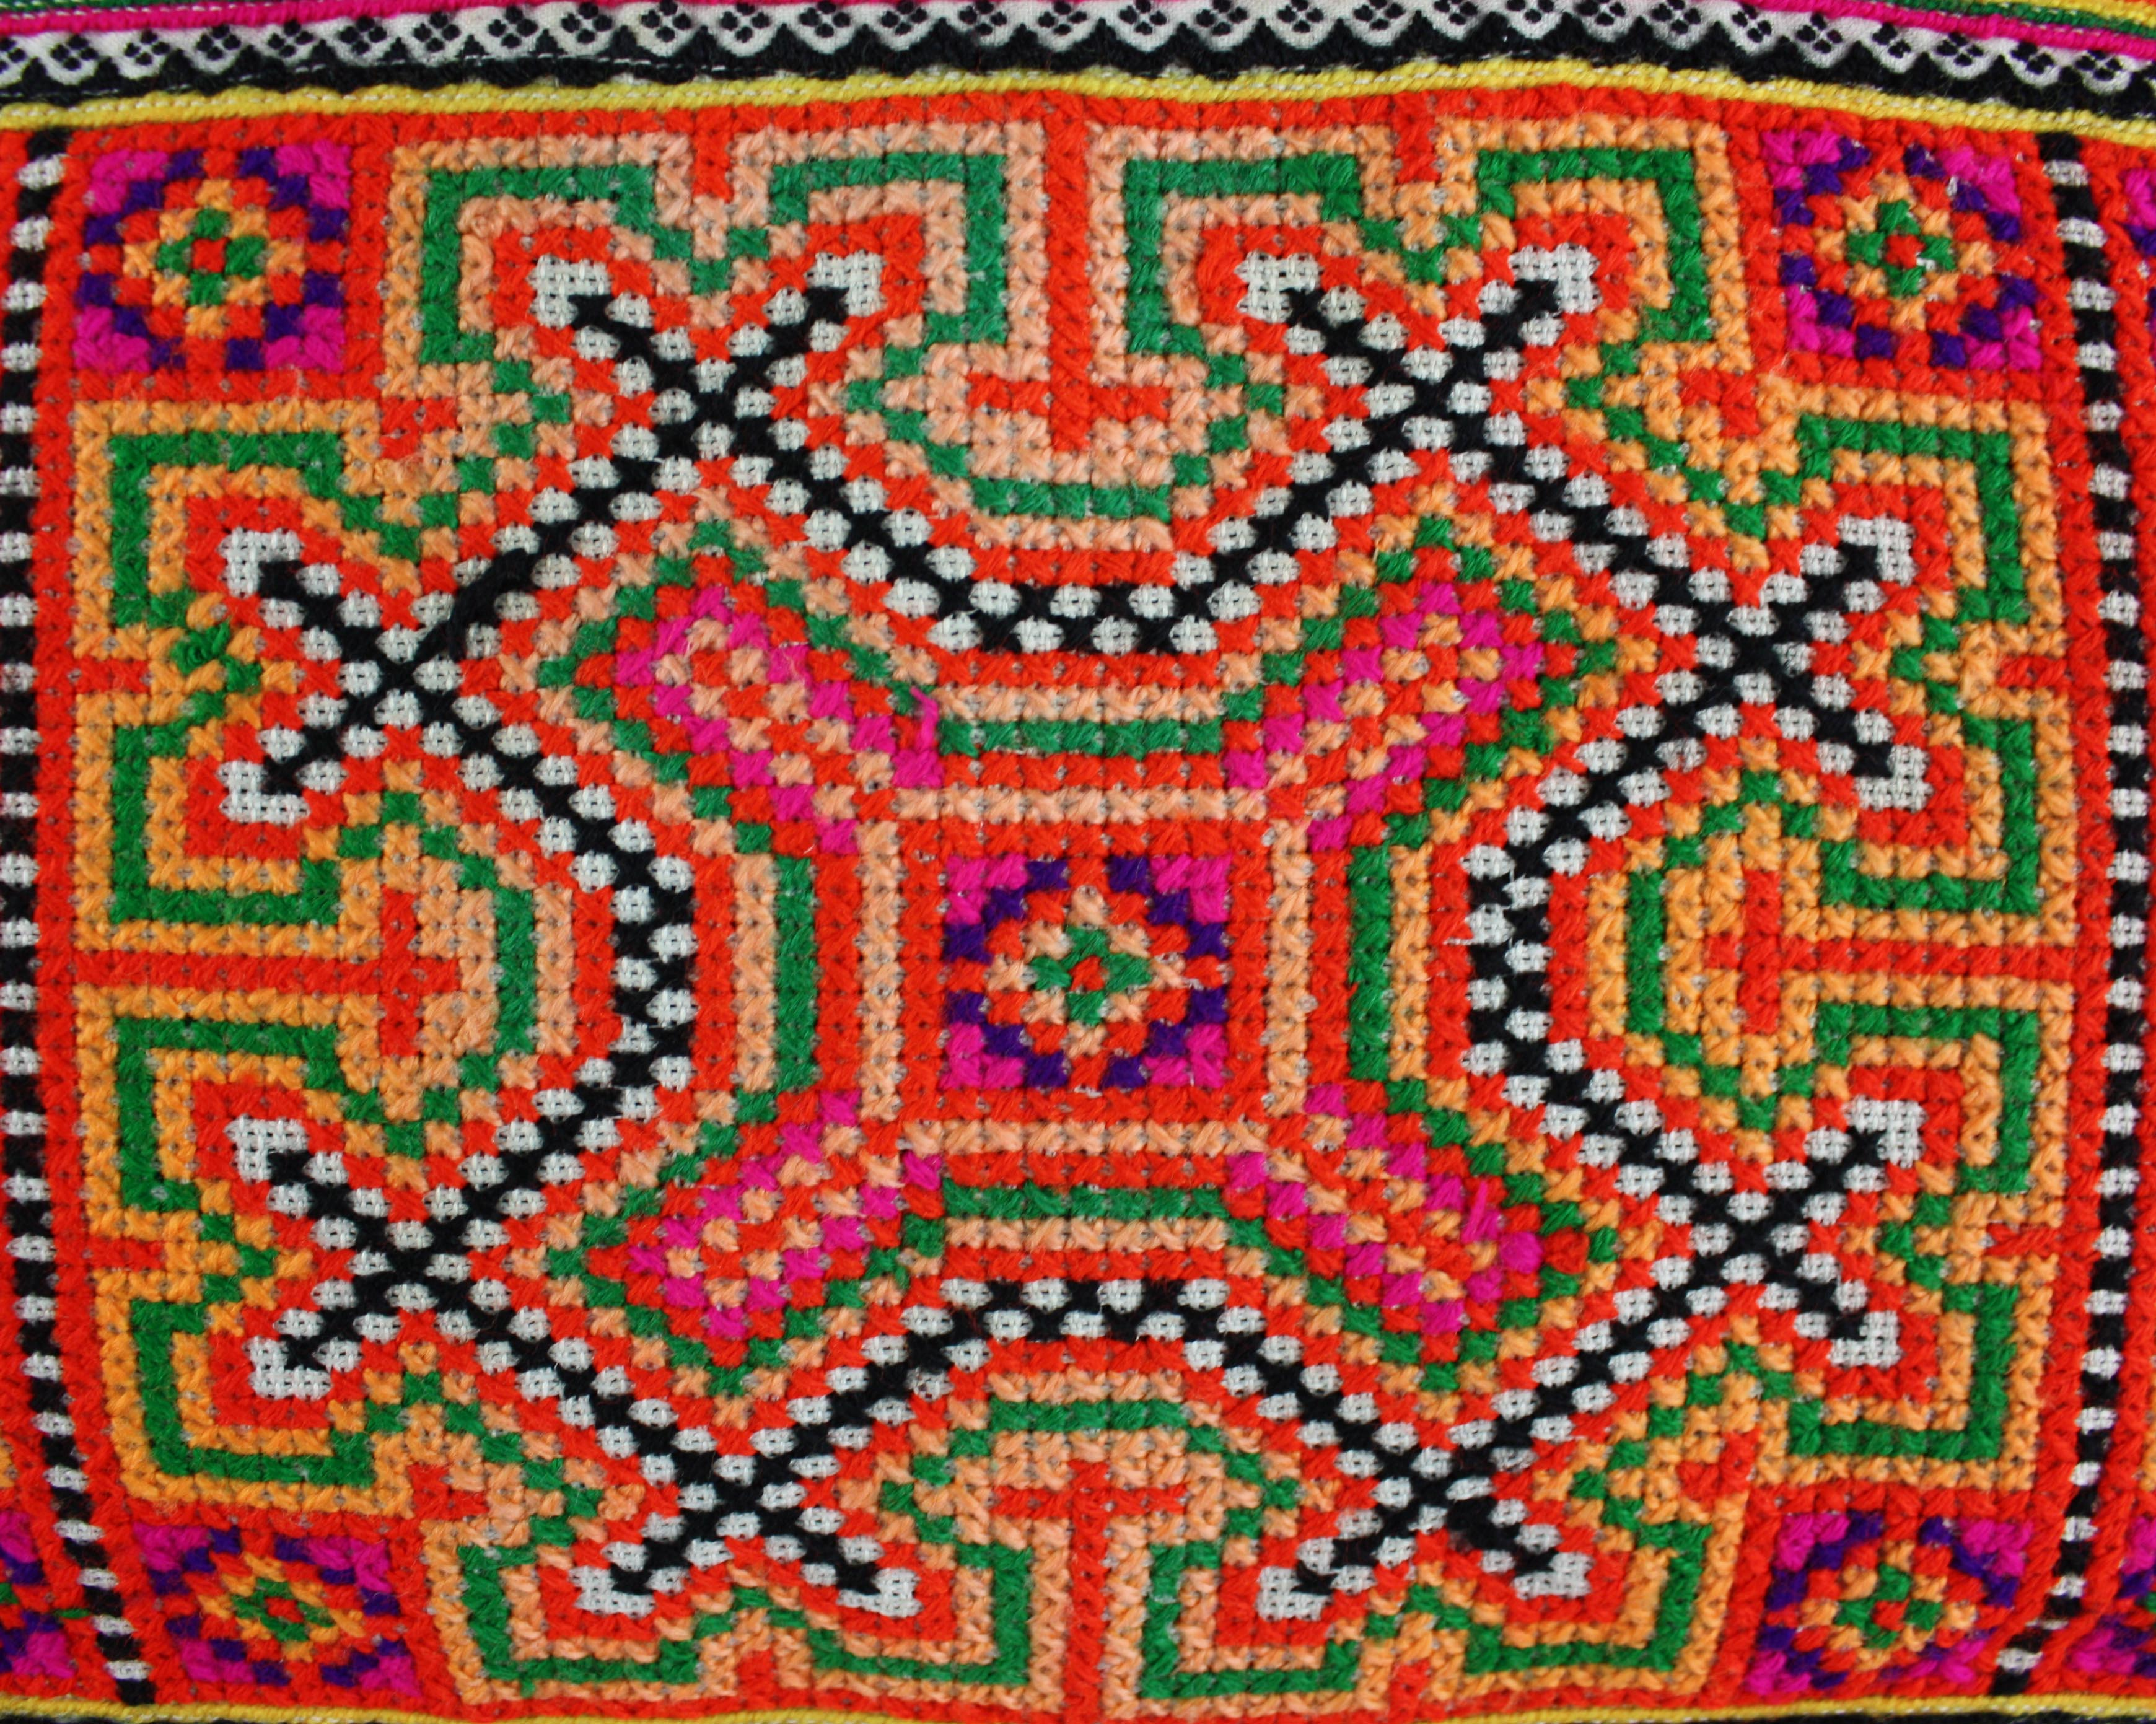 Hmong Embroidery Designs